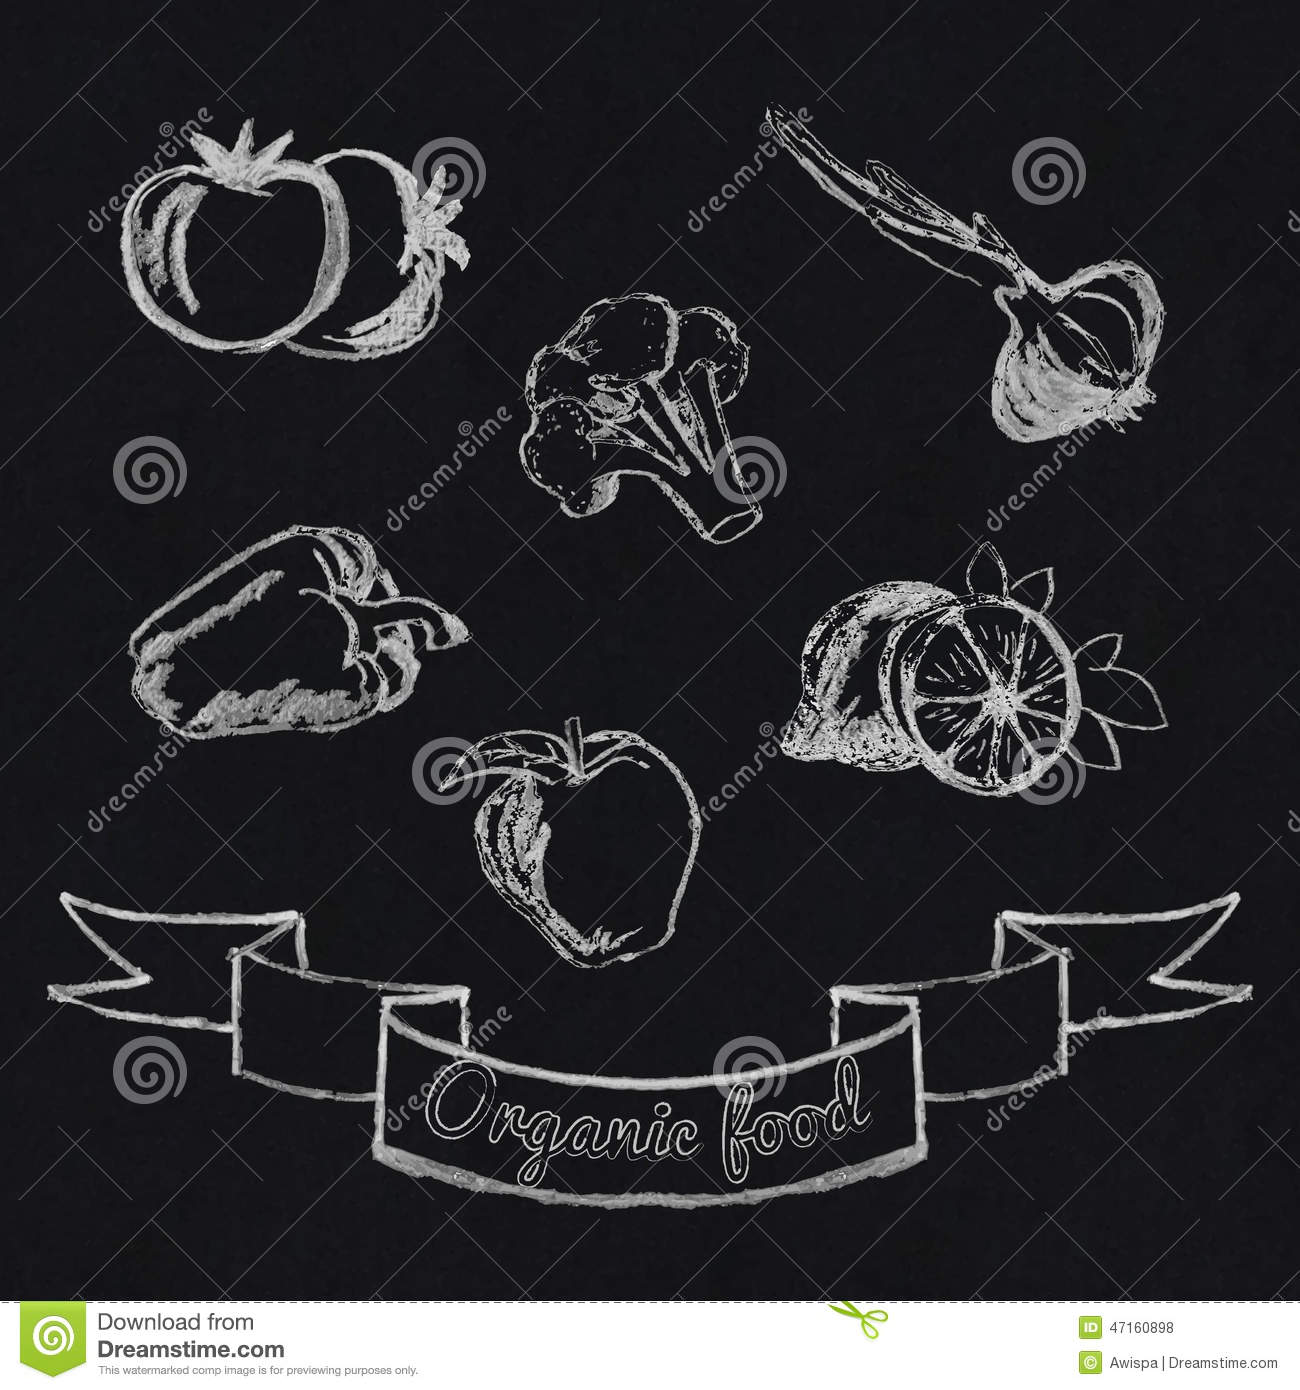 Baking Soda For Pimples likewise Stock Illustration Mixed Fruits Frame Border in addition Stock Illustration Chalk Fruit Vegetables Icon Food Chalkboard Background Image47160898 also Clipart Black Apple 2 in addition Lemon. on drawing apple juice